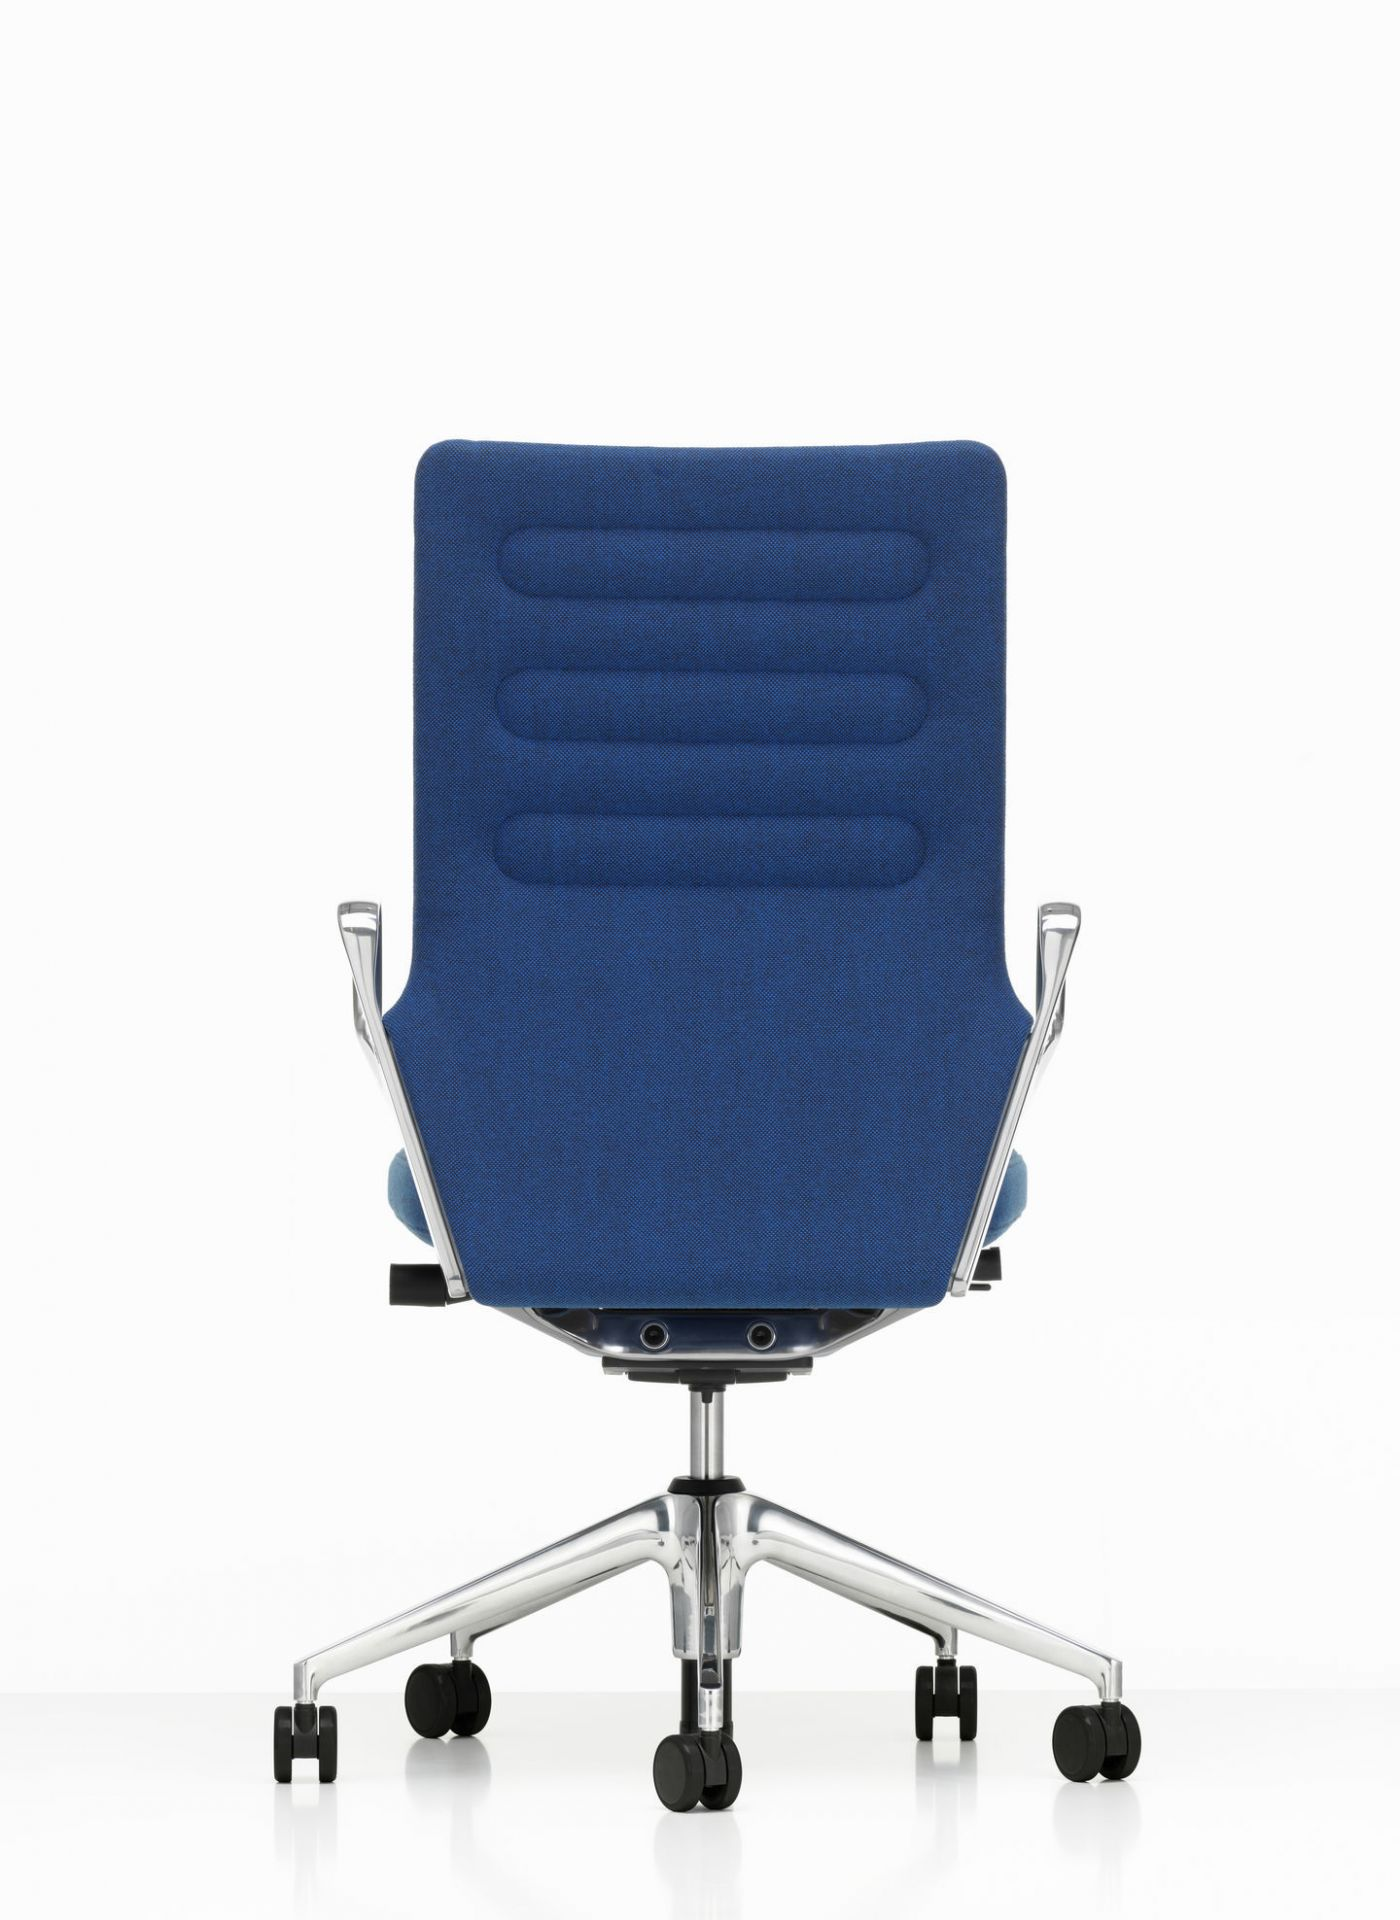 AC5 Work Office Swivel Chair with adjustable Lumbar support Vitra